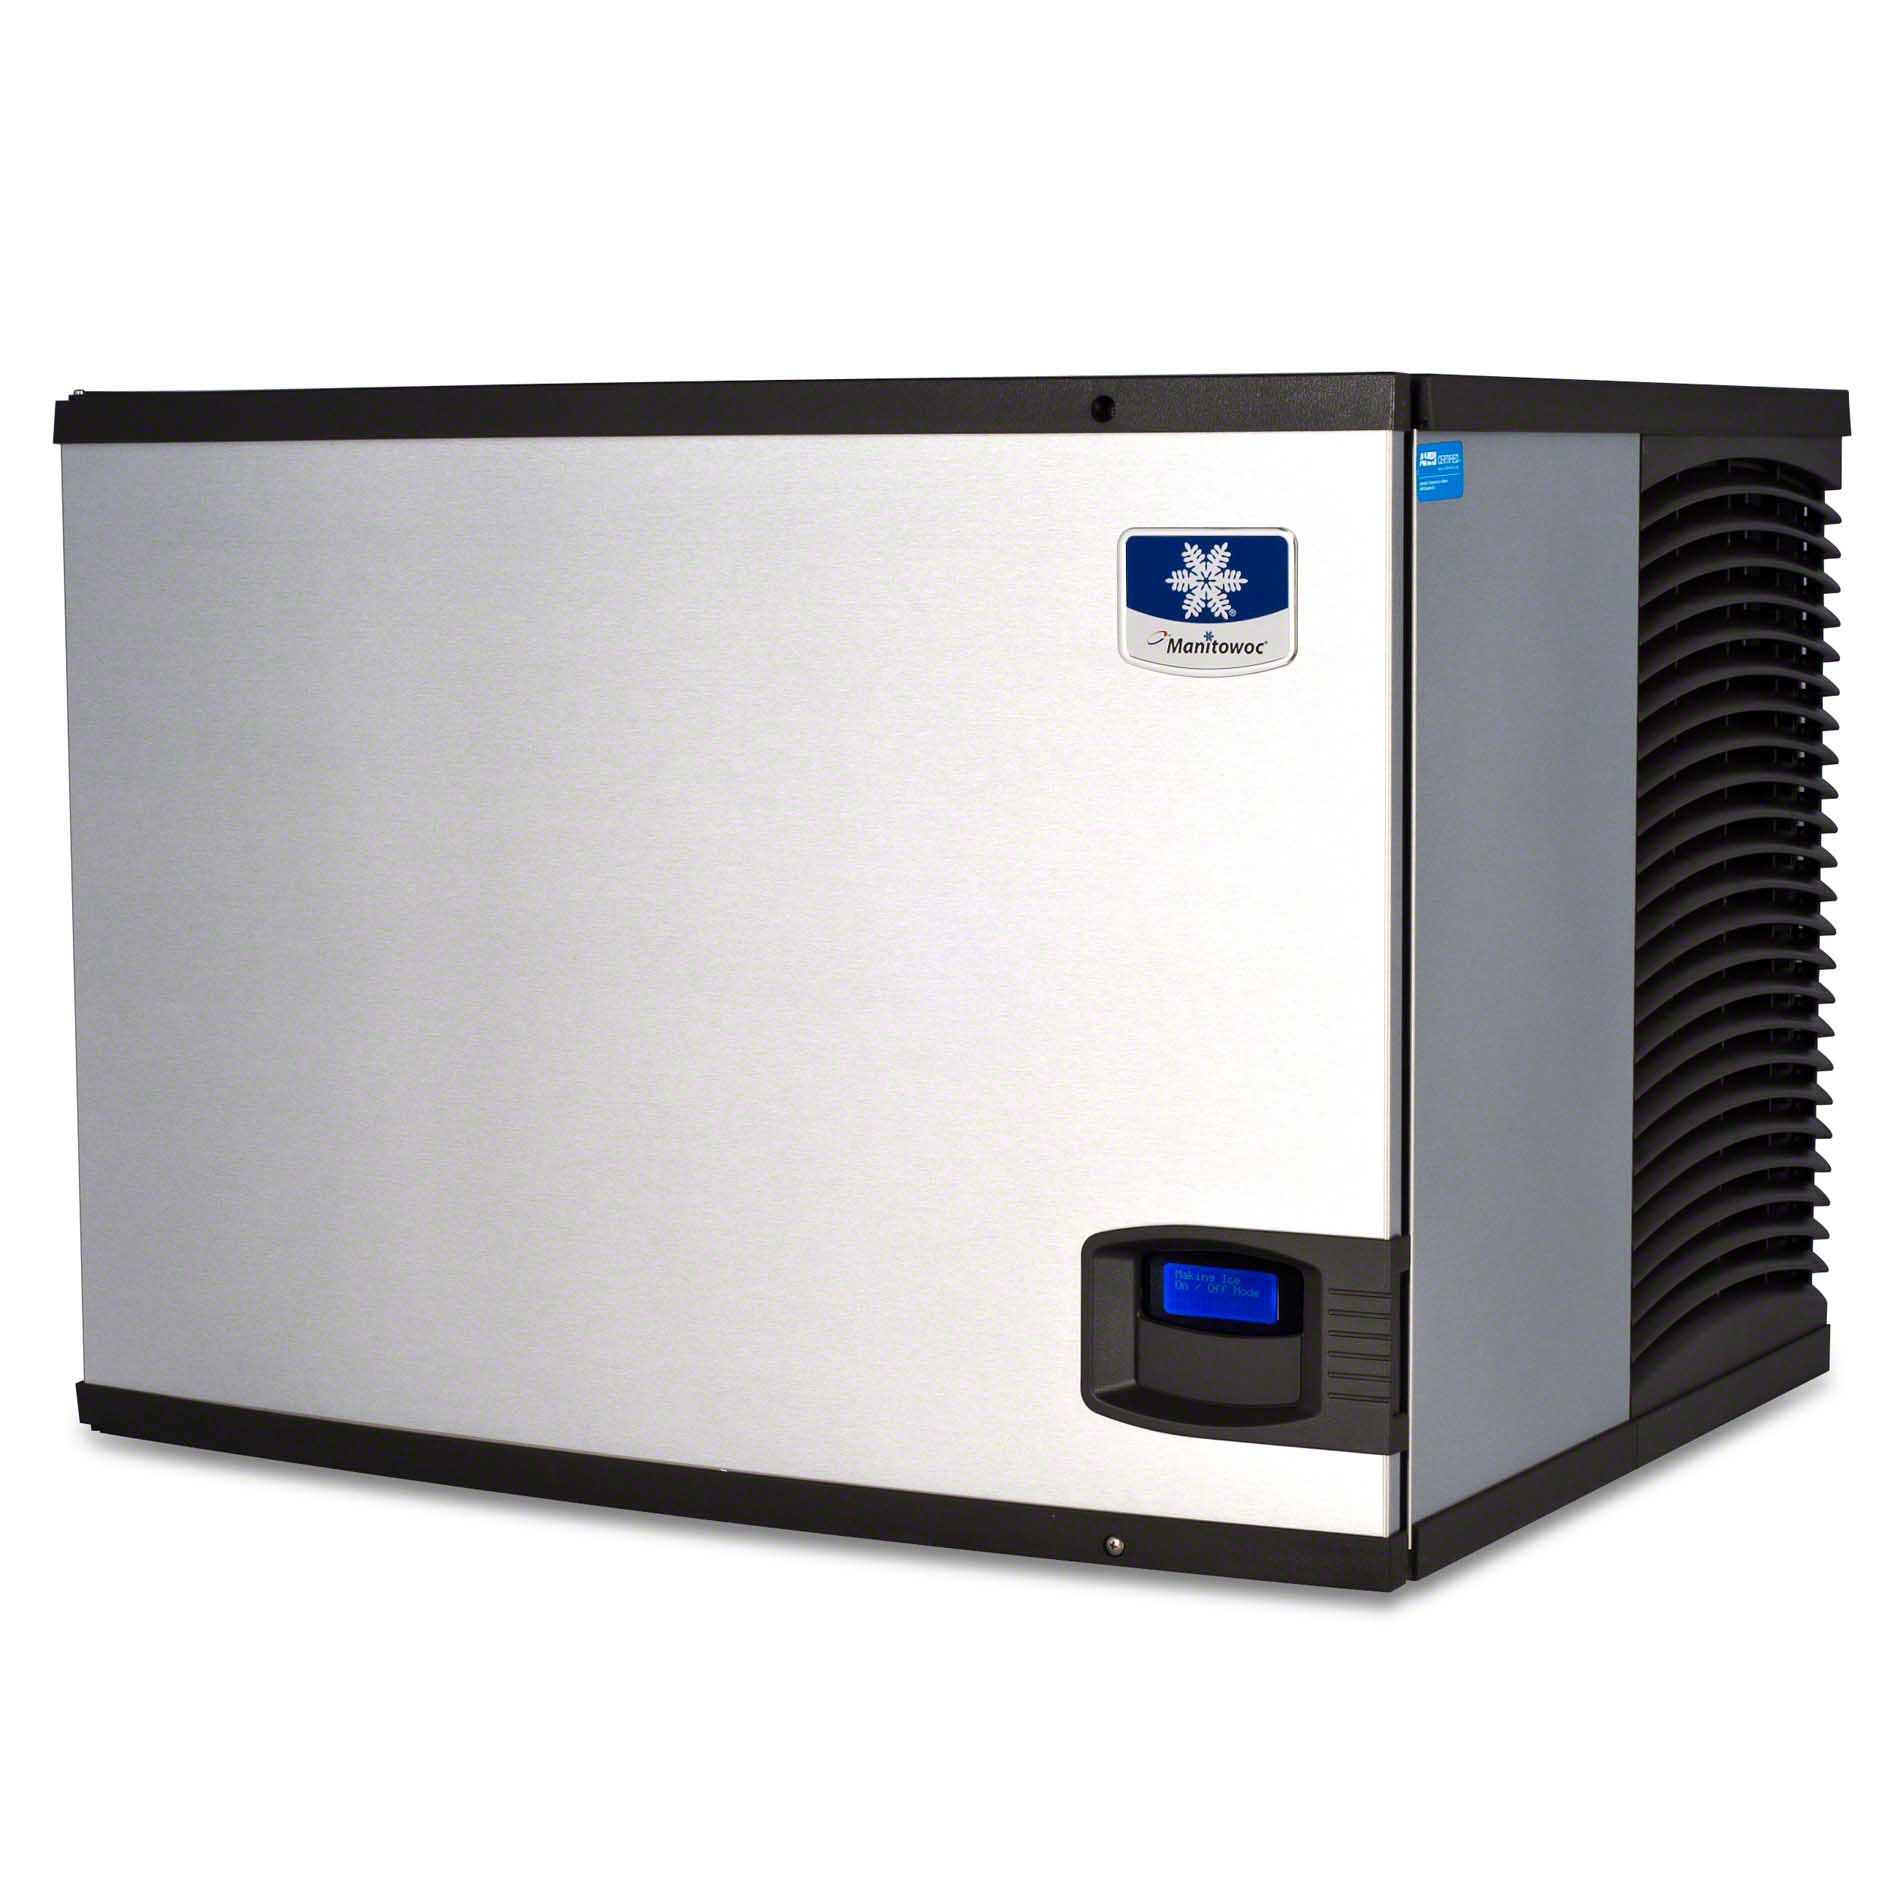 Manitowoc - ID-0502A 530 lb Full Size Cube Ice Machine - Indigo Series - sold by Food Service Warehouse